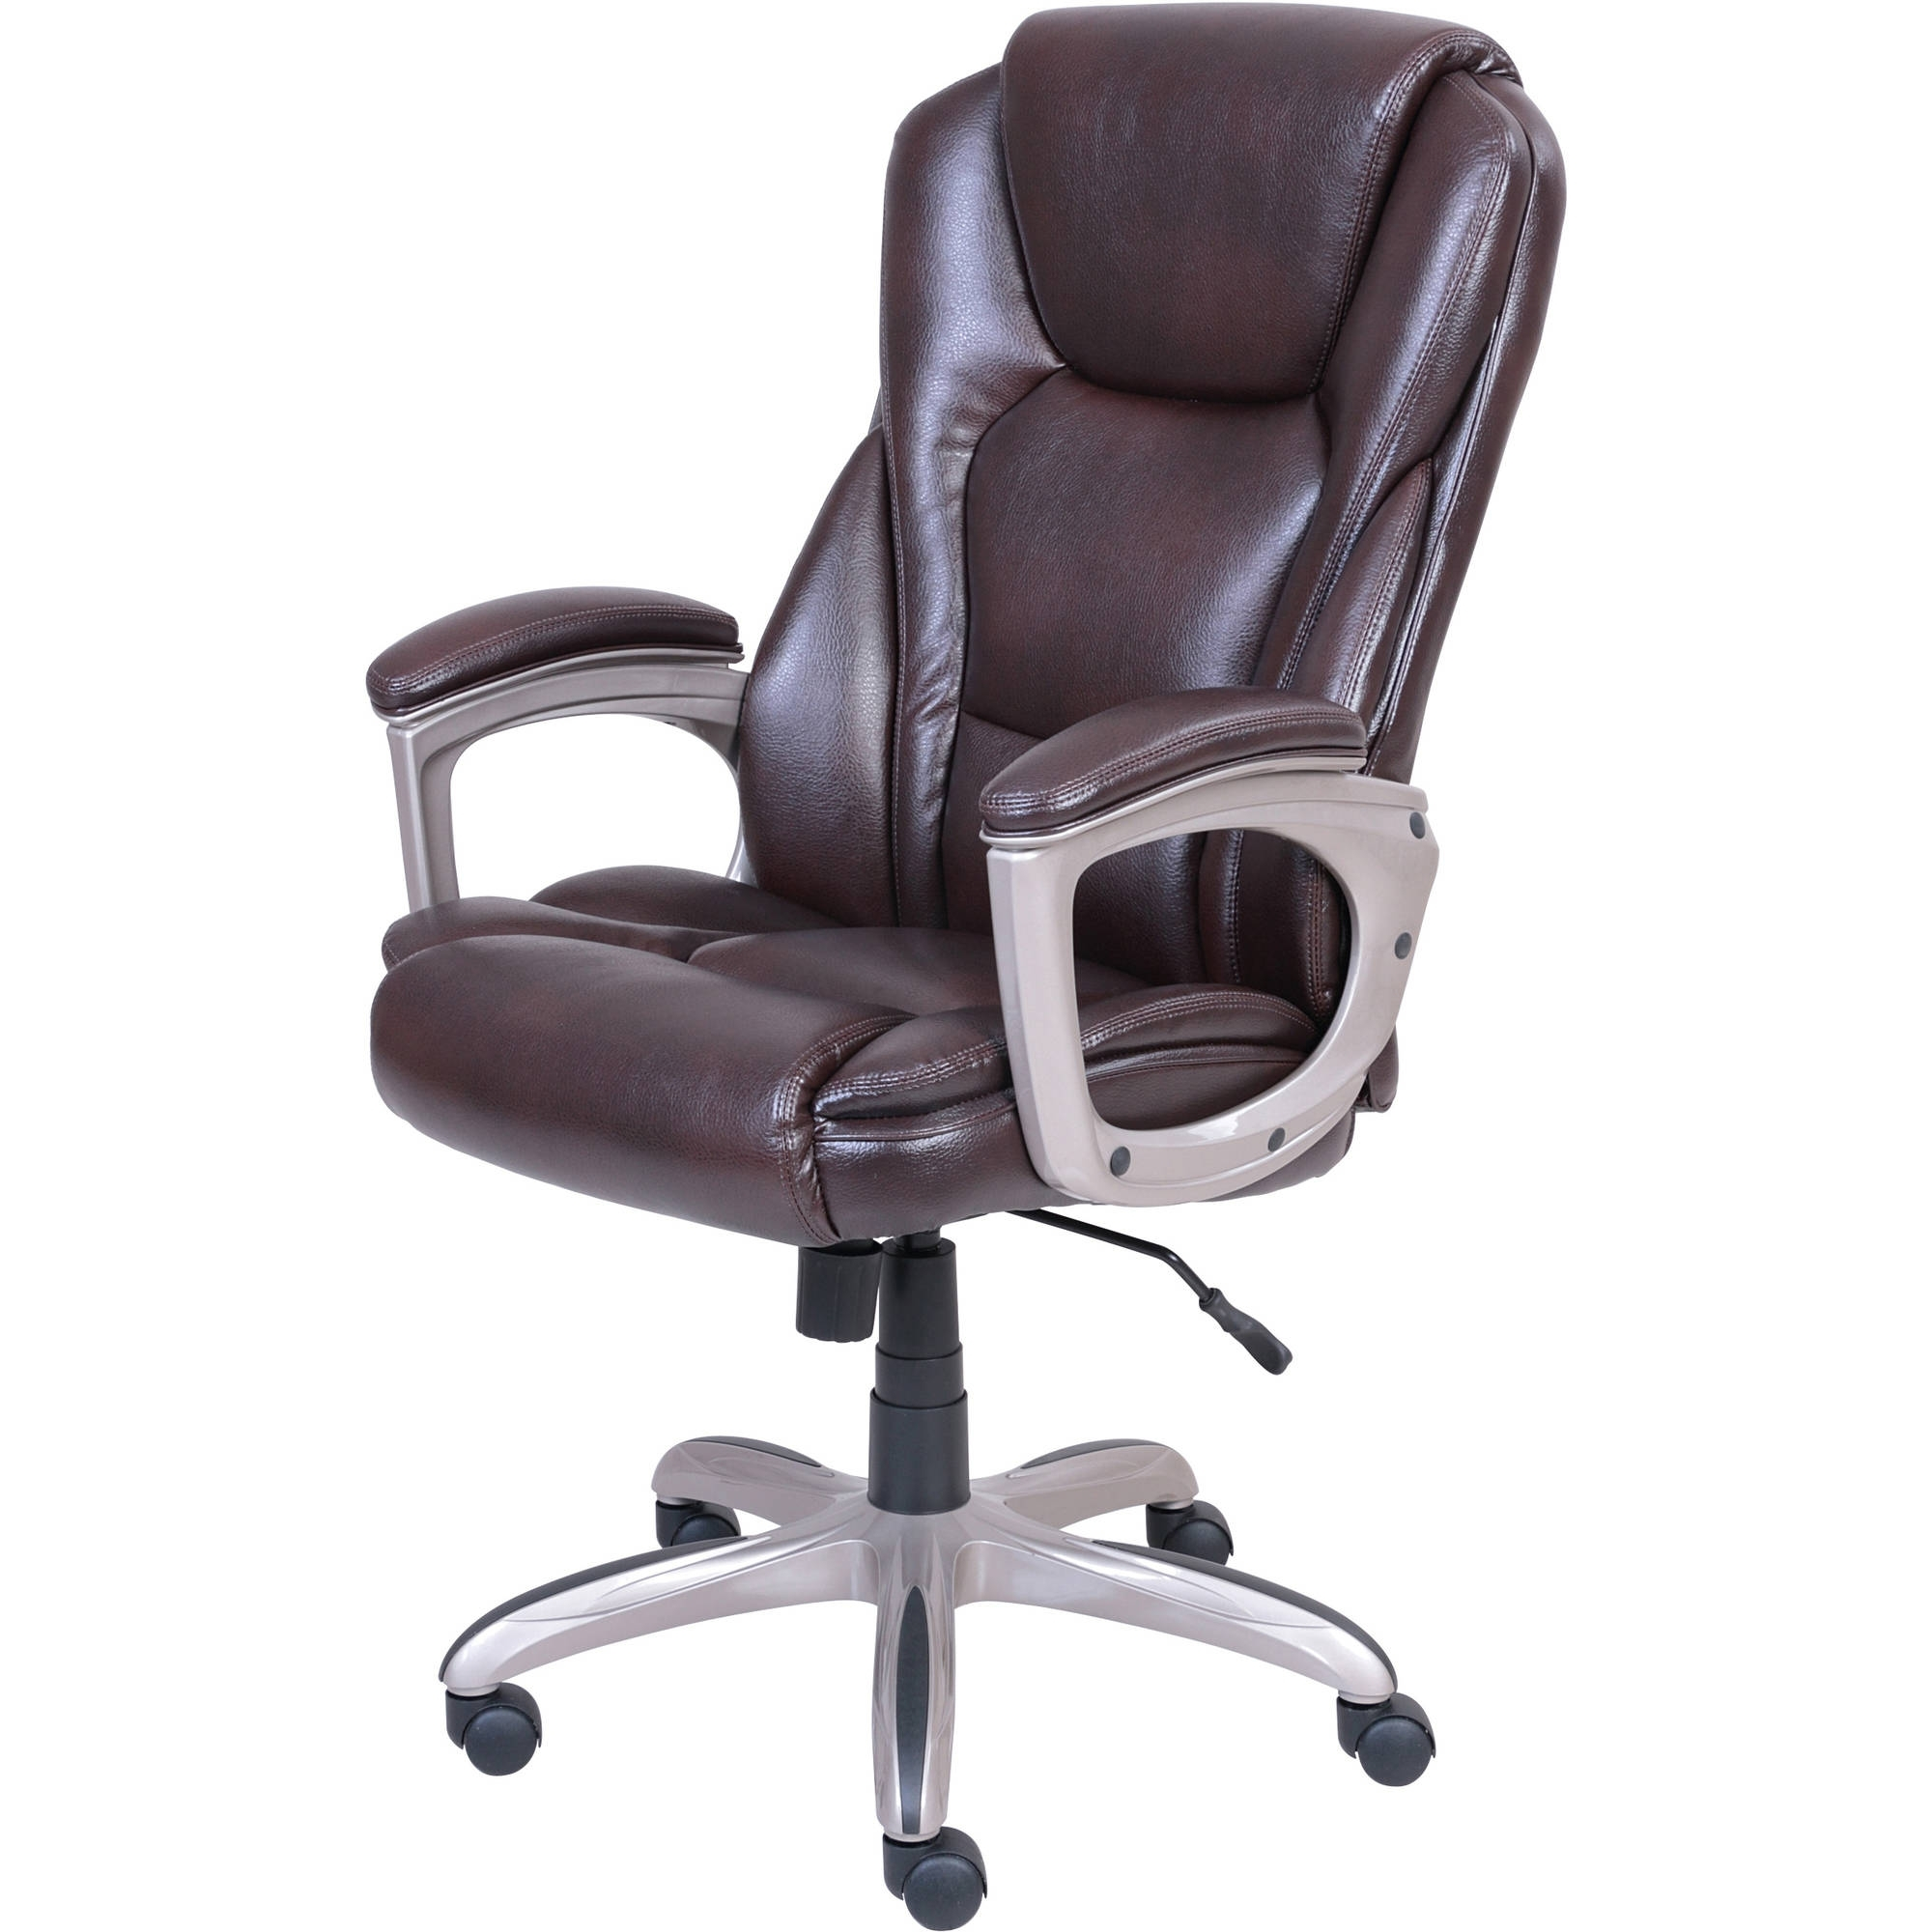 Xl Executive Office Chairs Throughout Famous Serta Big & Tall Commercial Office Chair With Memory Foam (Gallery 7 of 20)